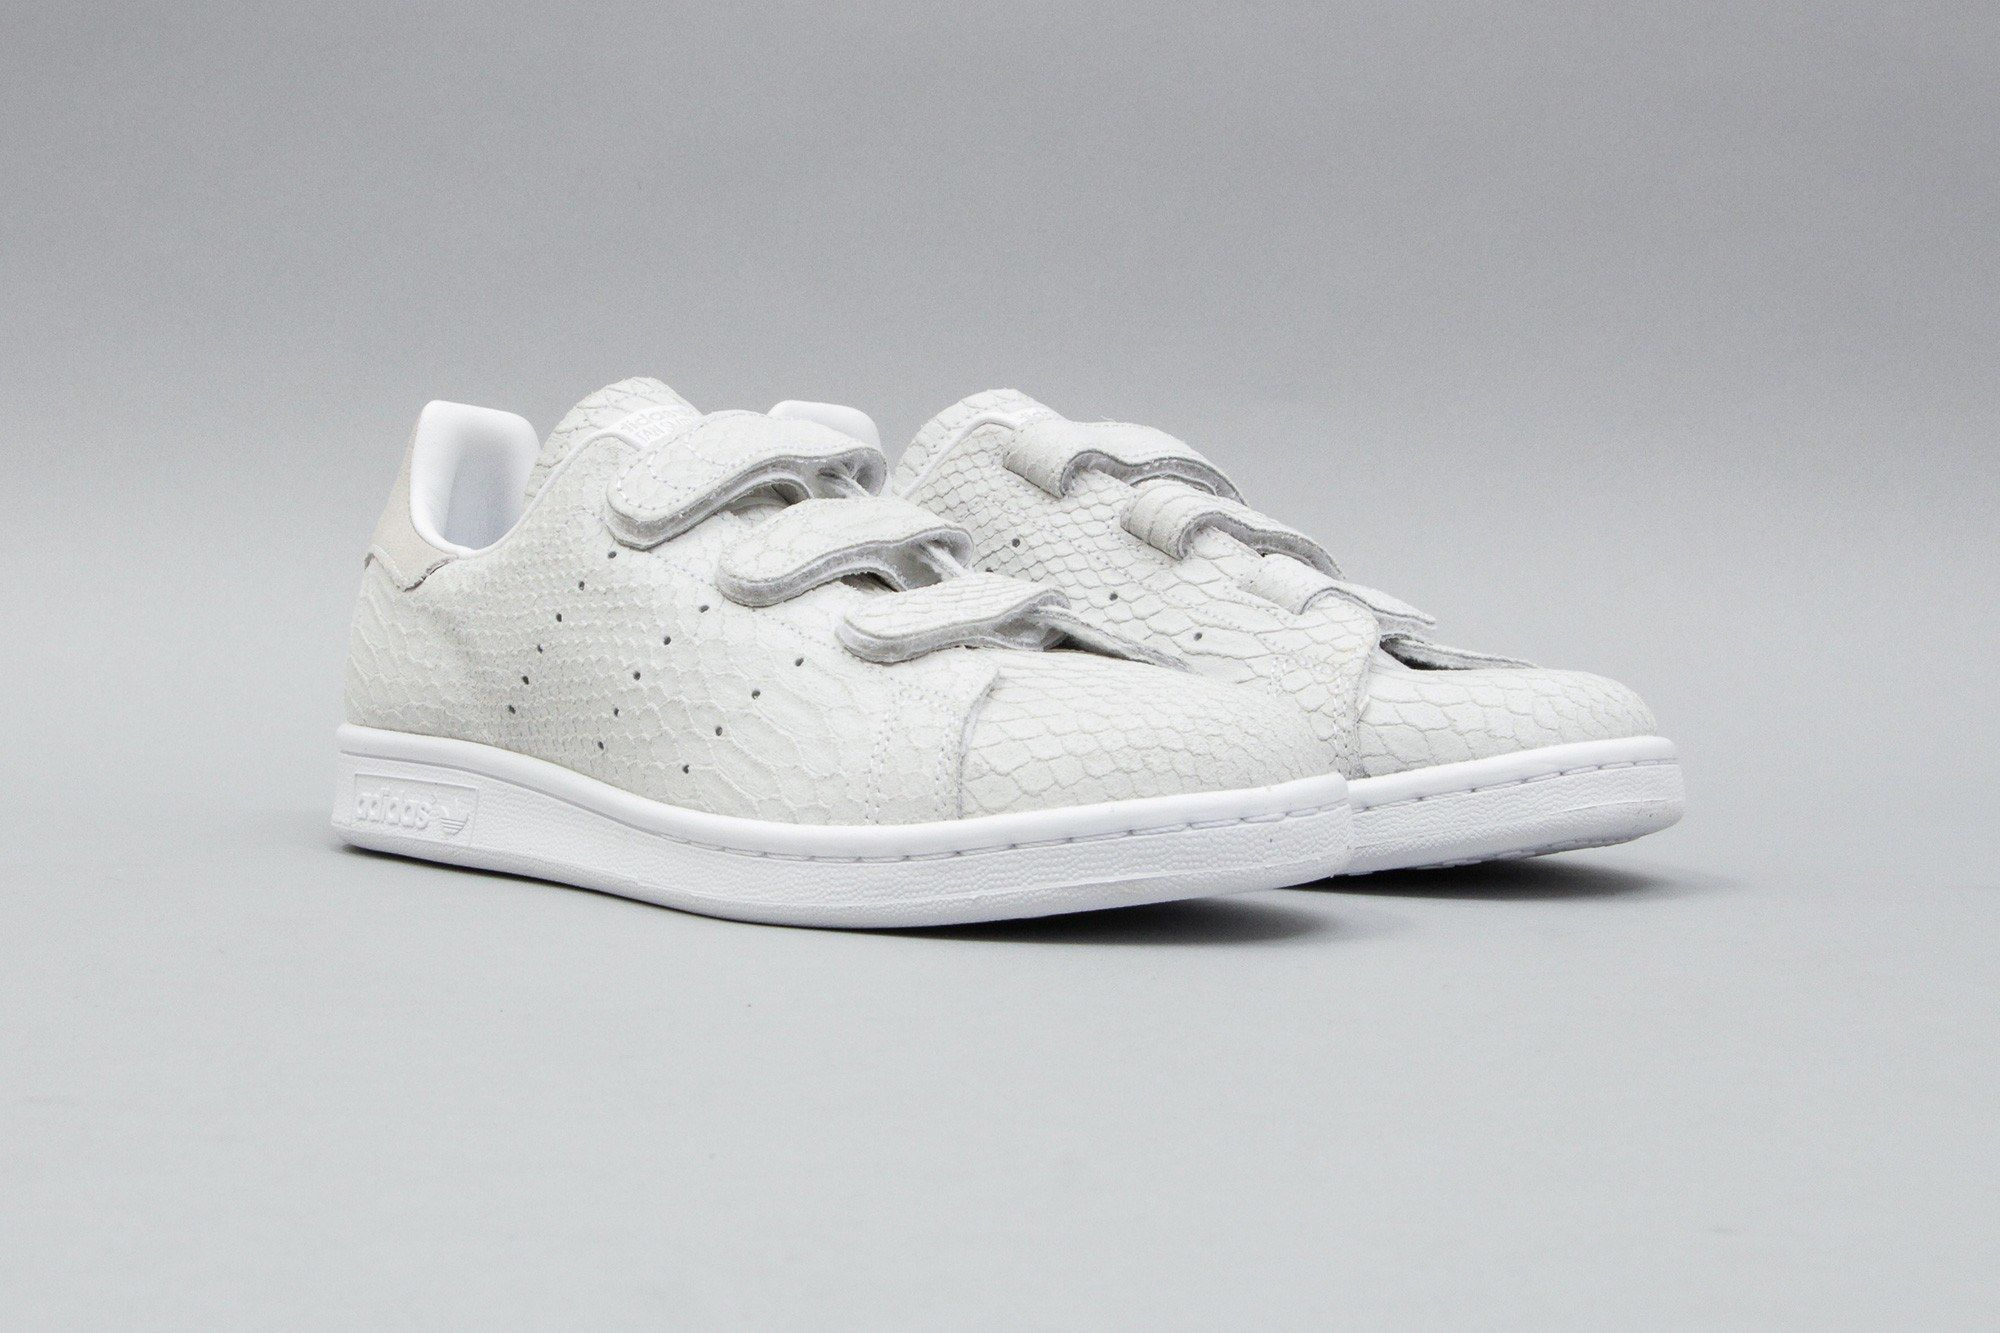 The adidas Originals Stan Smith CF Releases In Three Classic